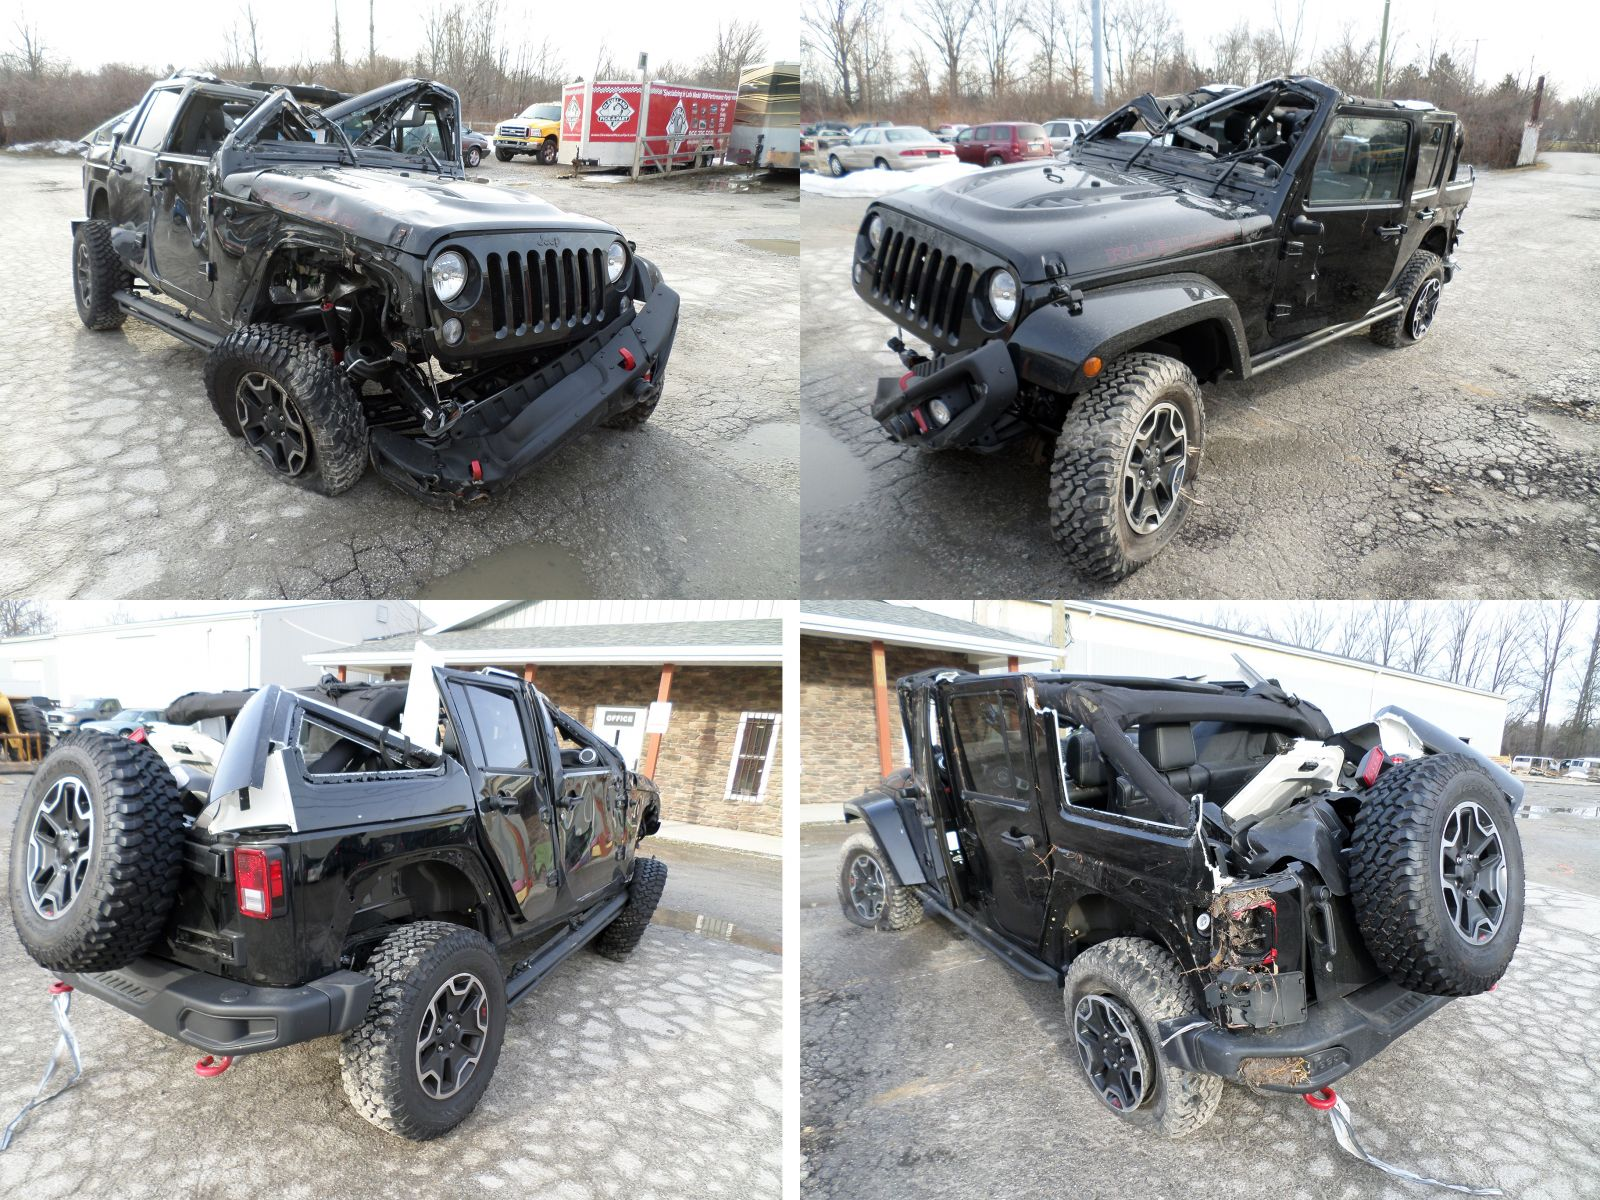 2014 Jeep Wrangler Unlimited Rubicon Cleveland Power & Performance